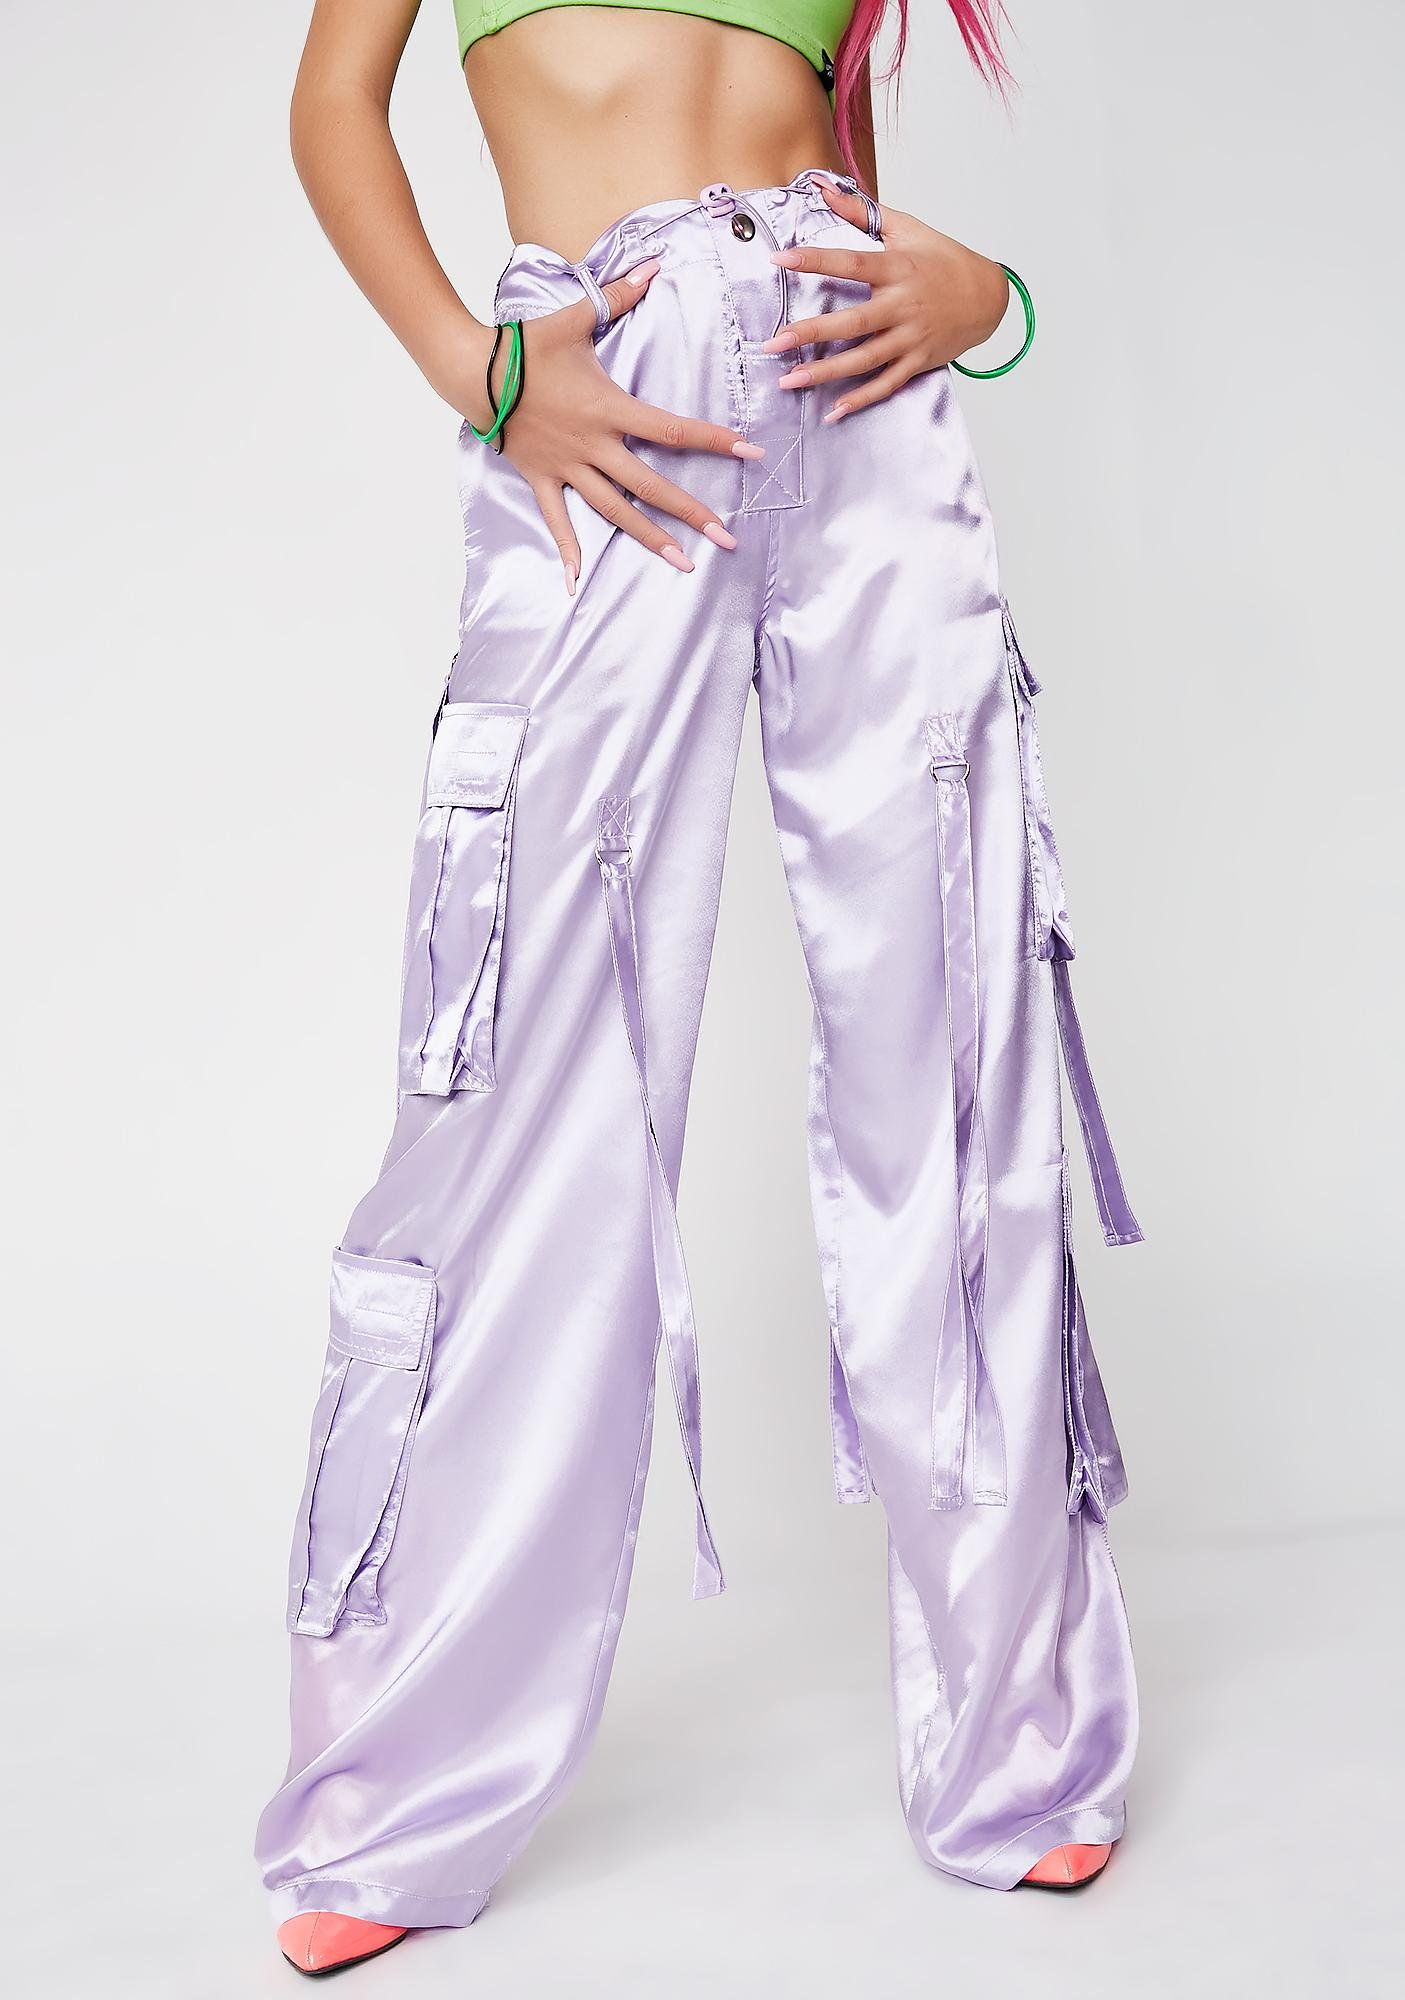 61d892e1 Illustrated People Lilac Octopus Trousers cuz you just chillen and  relaxin', bb. Keep